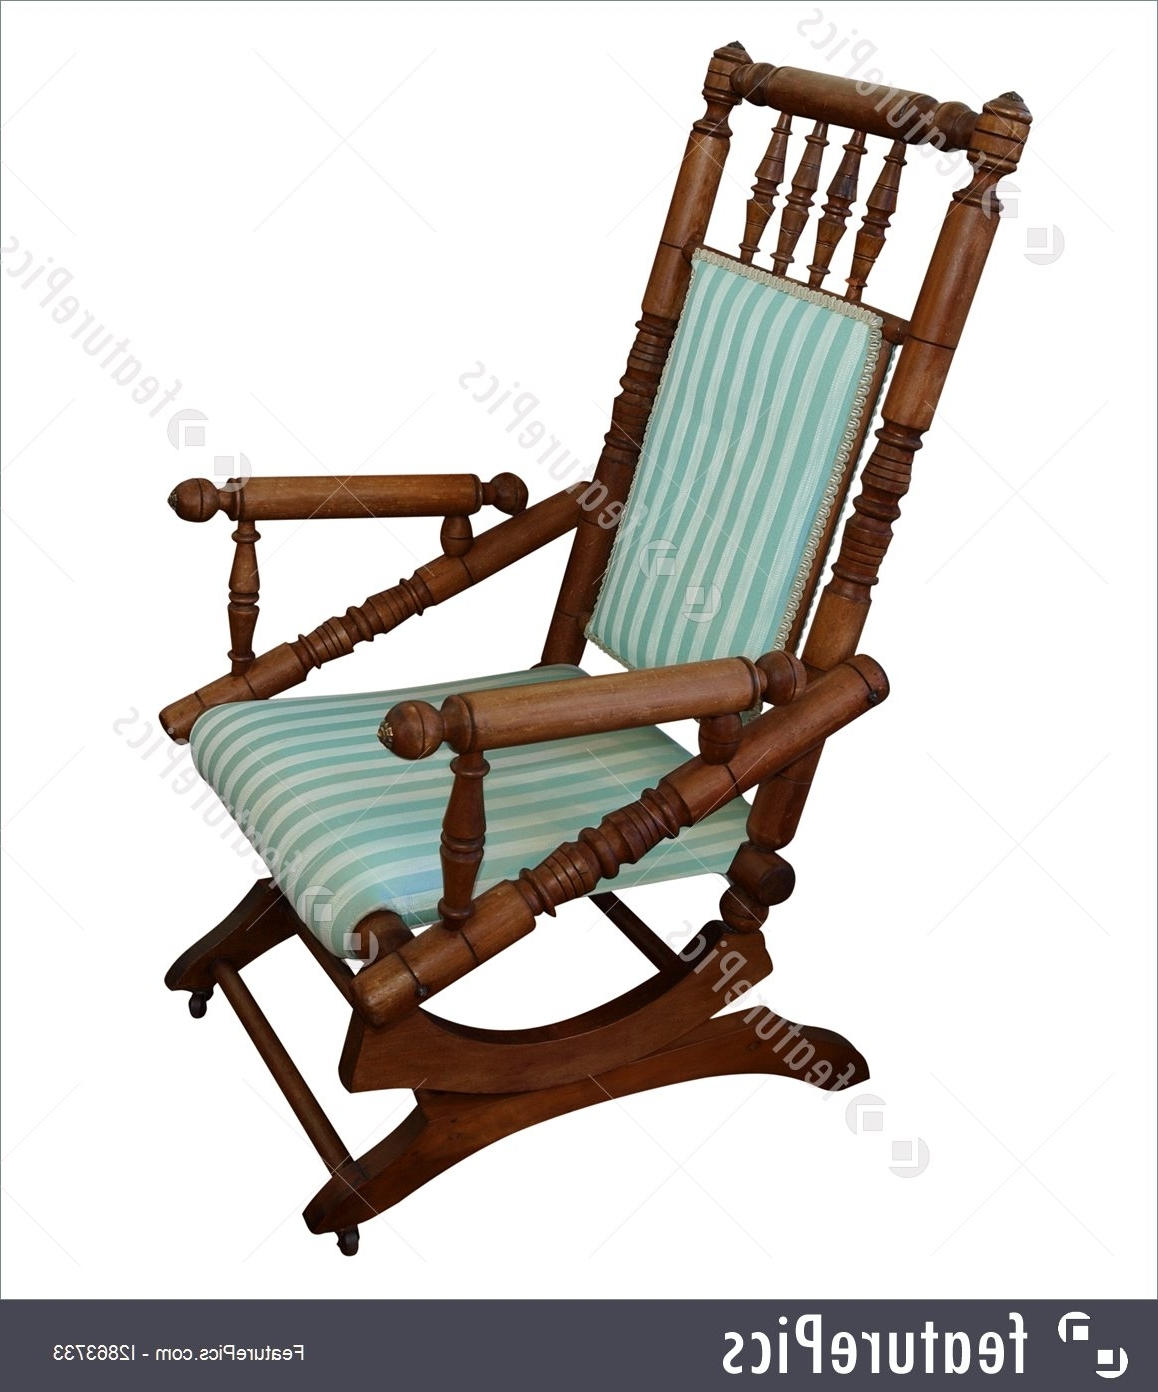 House Living: Antique Rocking Chair Isolated With Clipping Path Pertaining To 2017 Antique Rocking Chairs (View 9 of 15)